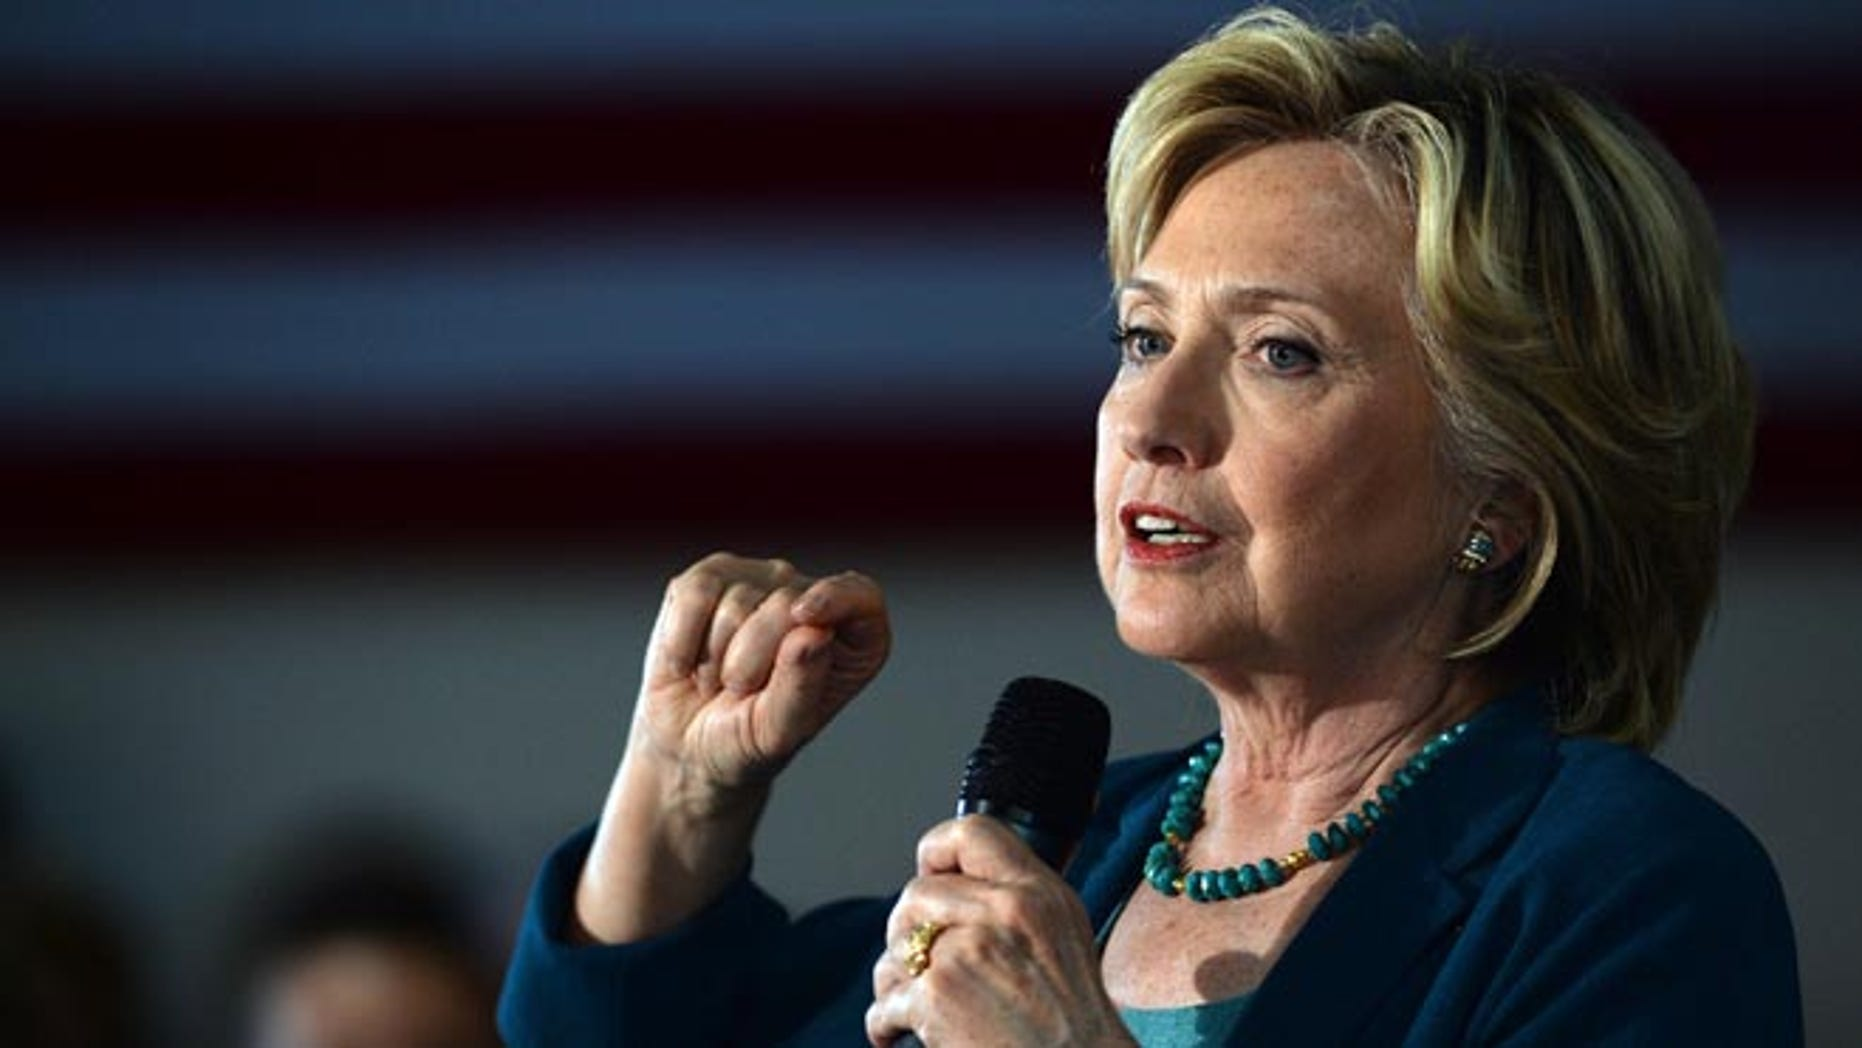 LACONIA, NH - SEPTEMBER 17: Democratic Presidential candidate Hillary Clinton speaks during a community forum on substance abuse September 17, 2015 in Laconia, New Hampshire. Clinton  spent the day campaigning and spoke at on substance abuse. (Photo by Darren McCollester/Getty Images)